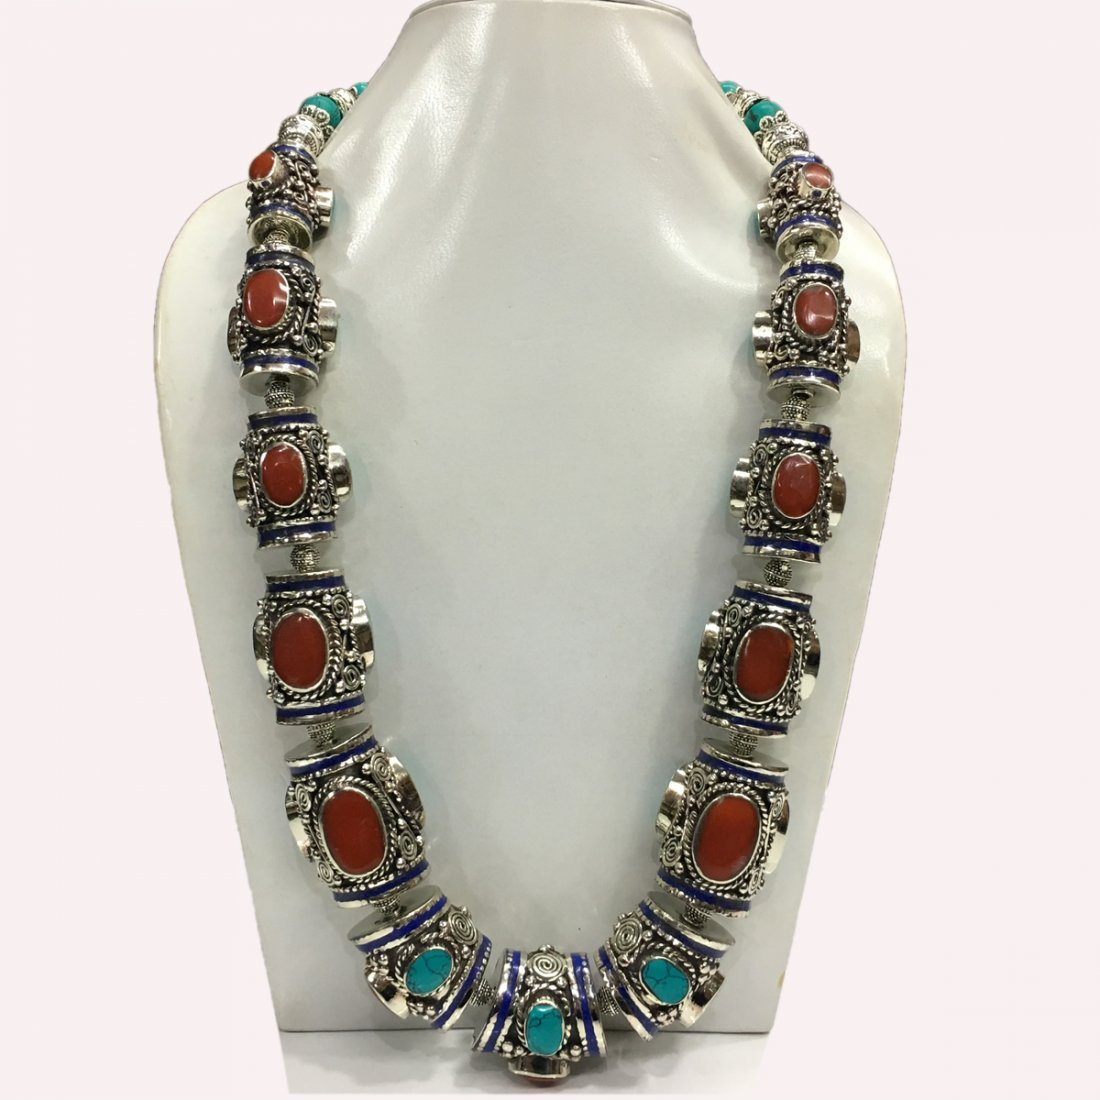 Women's Handmade Tribal Turquoise & Coral Necklace